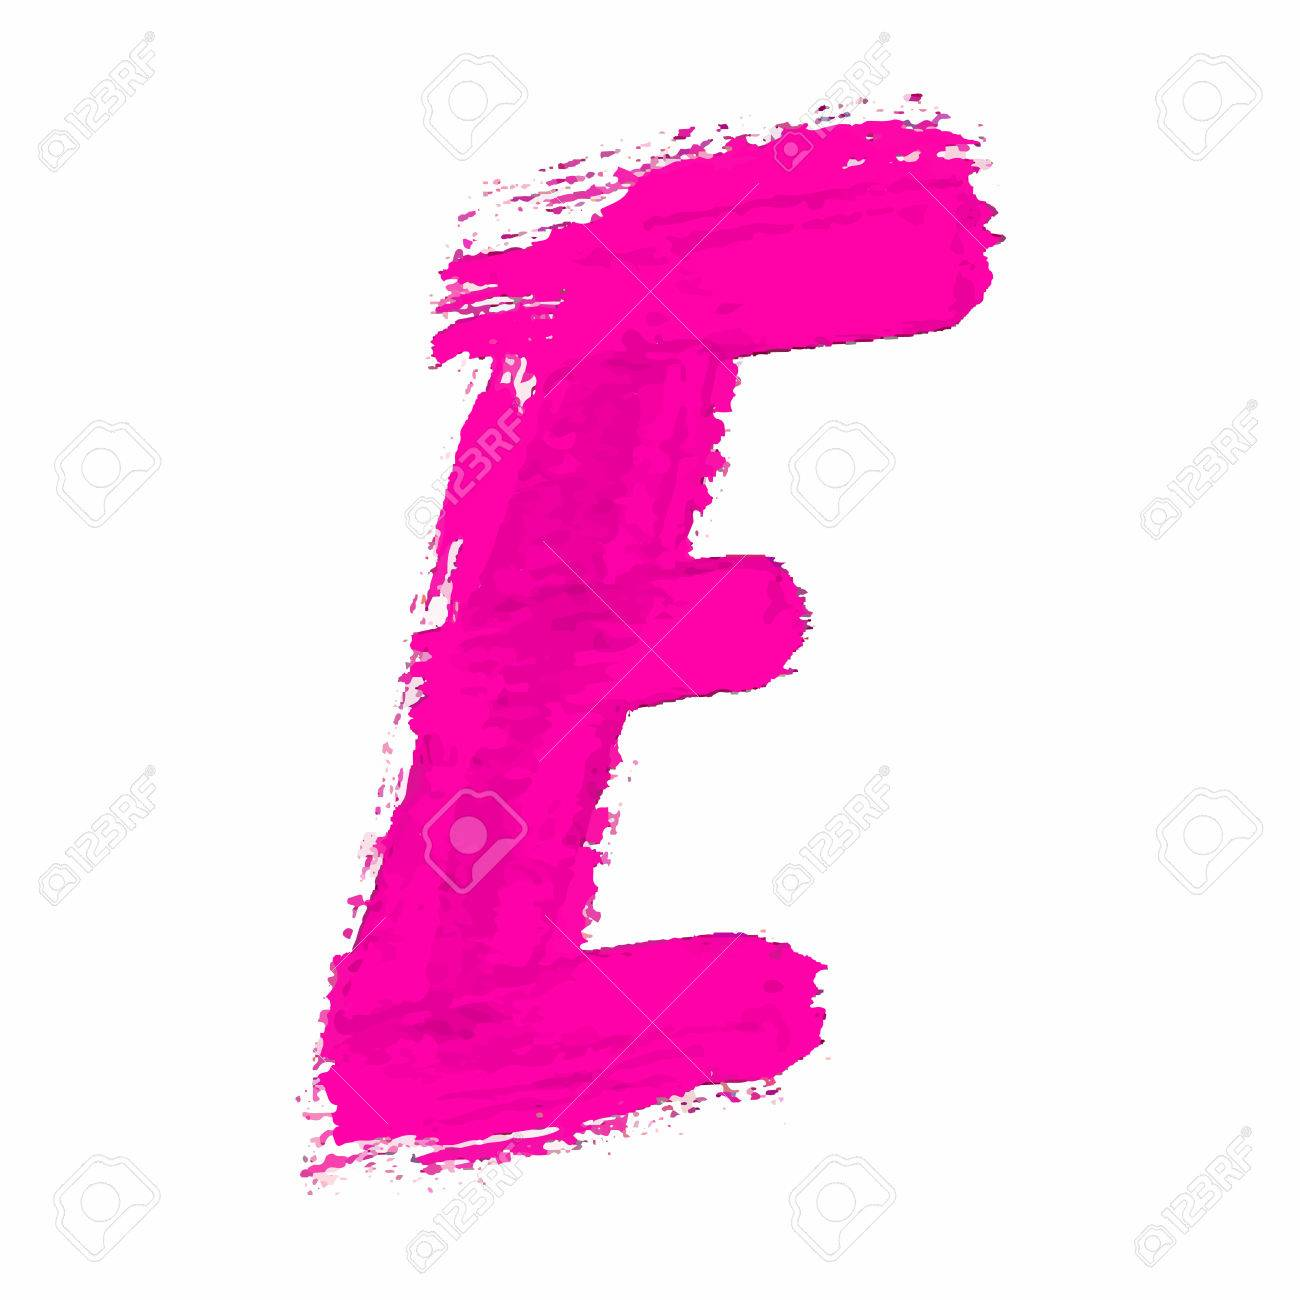 E - Pink Handwritten Letter On White Background. Acrylic Colors ...